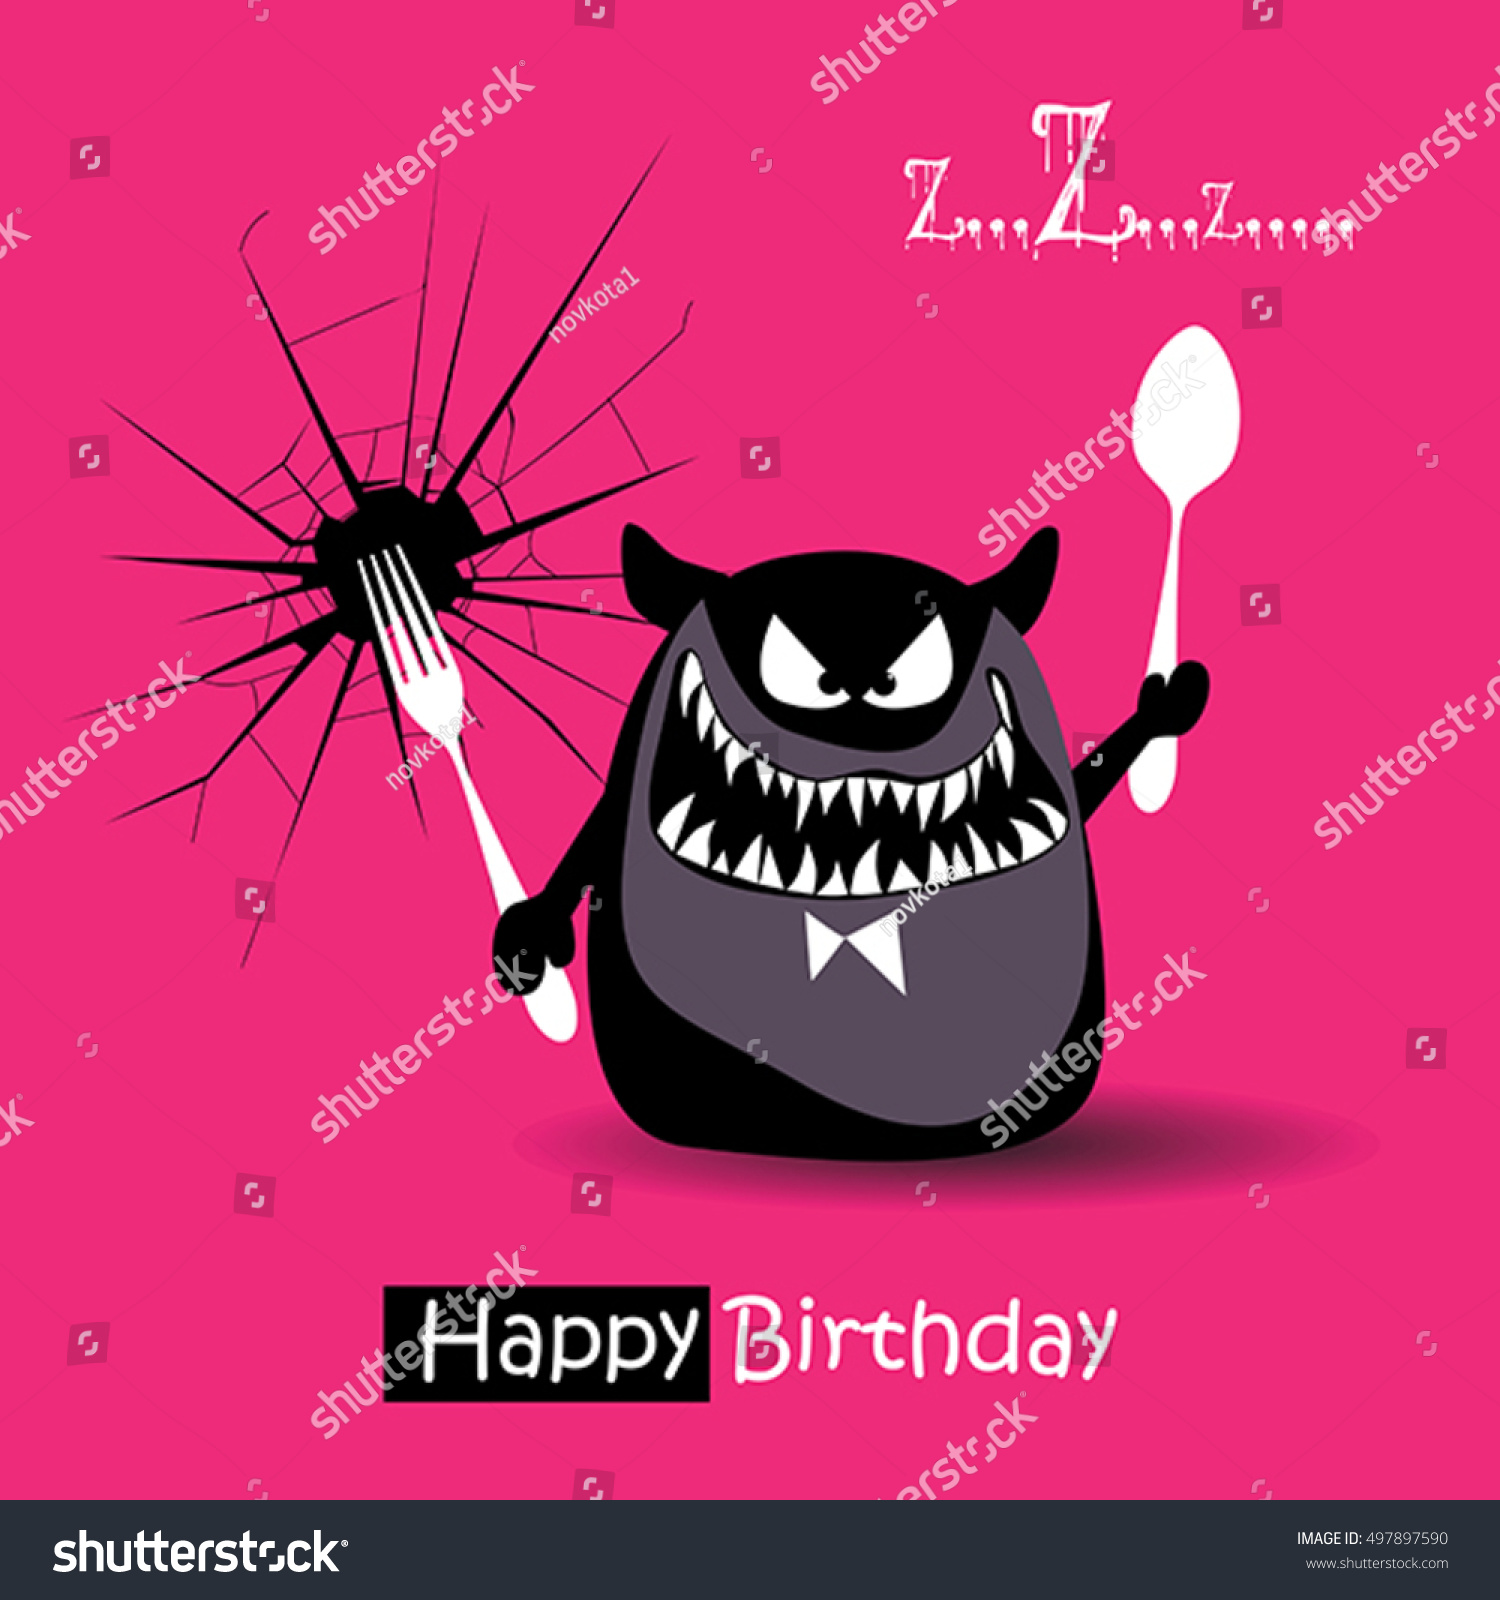 Happy Birthday Funny Card Smile Monsters Vector 497897590 – Happy Birthday Funny Cards